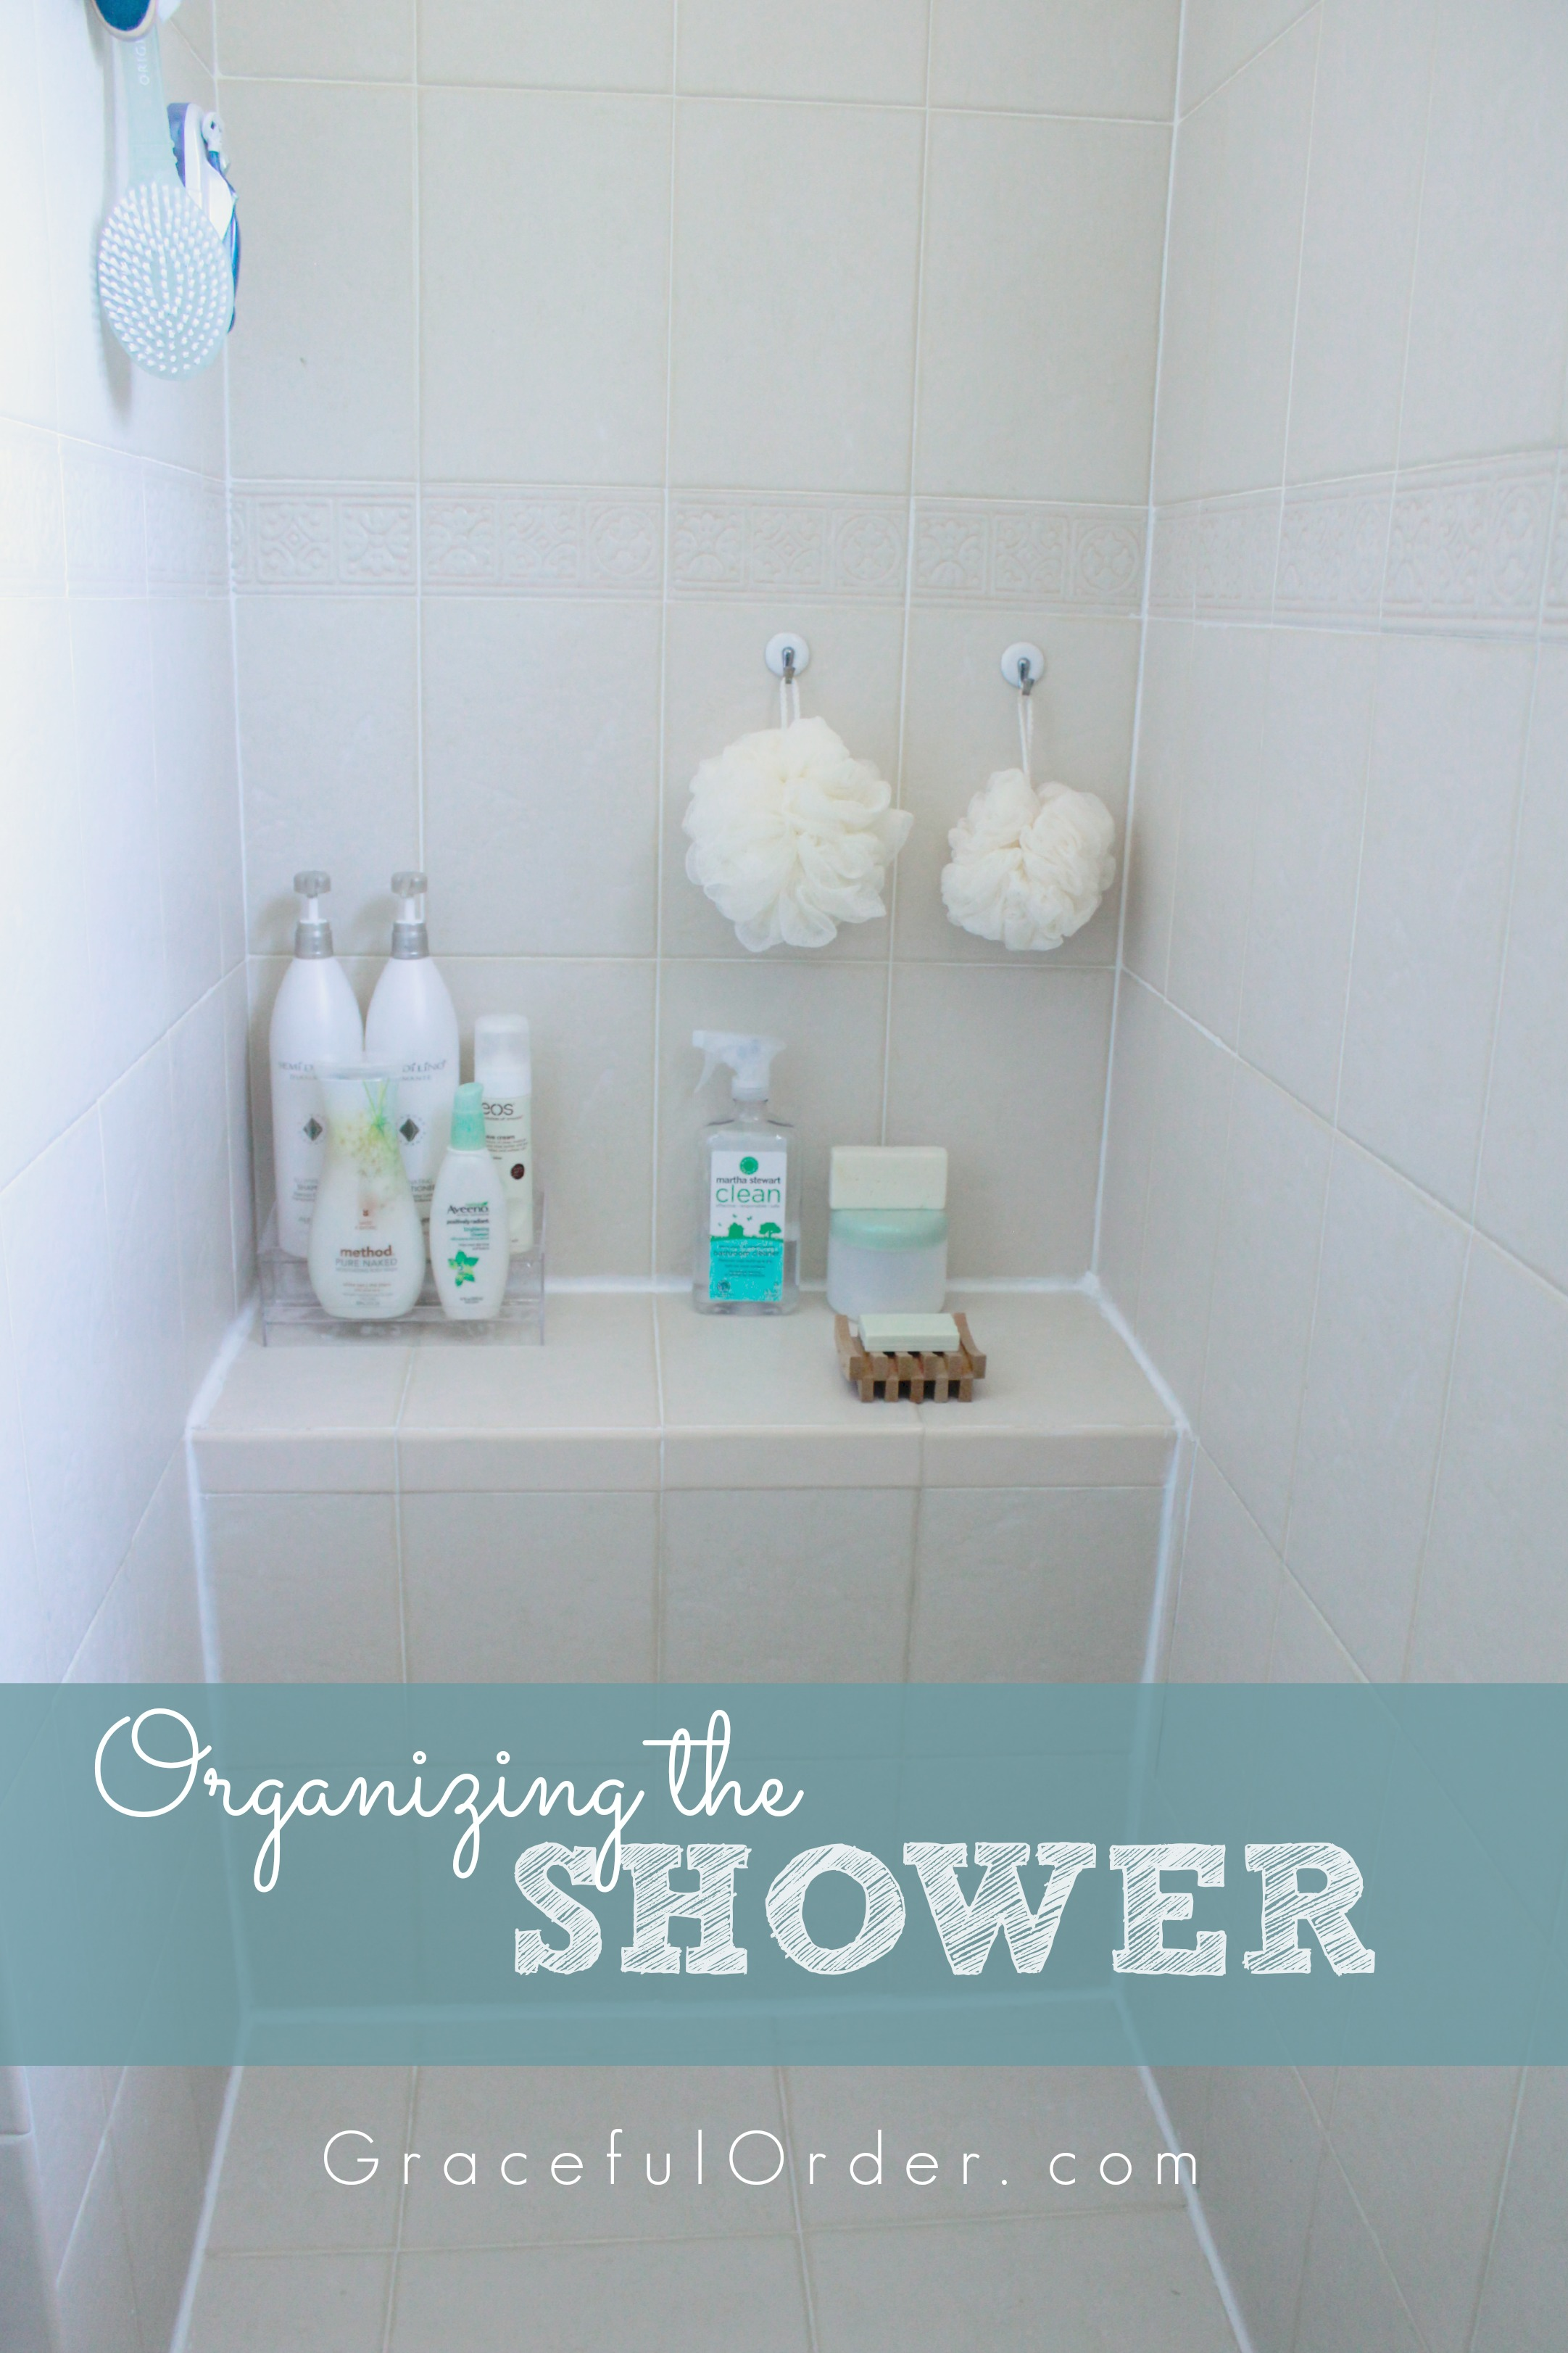 Organizing the Shower Area - Graceful Order